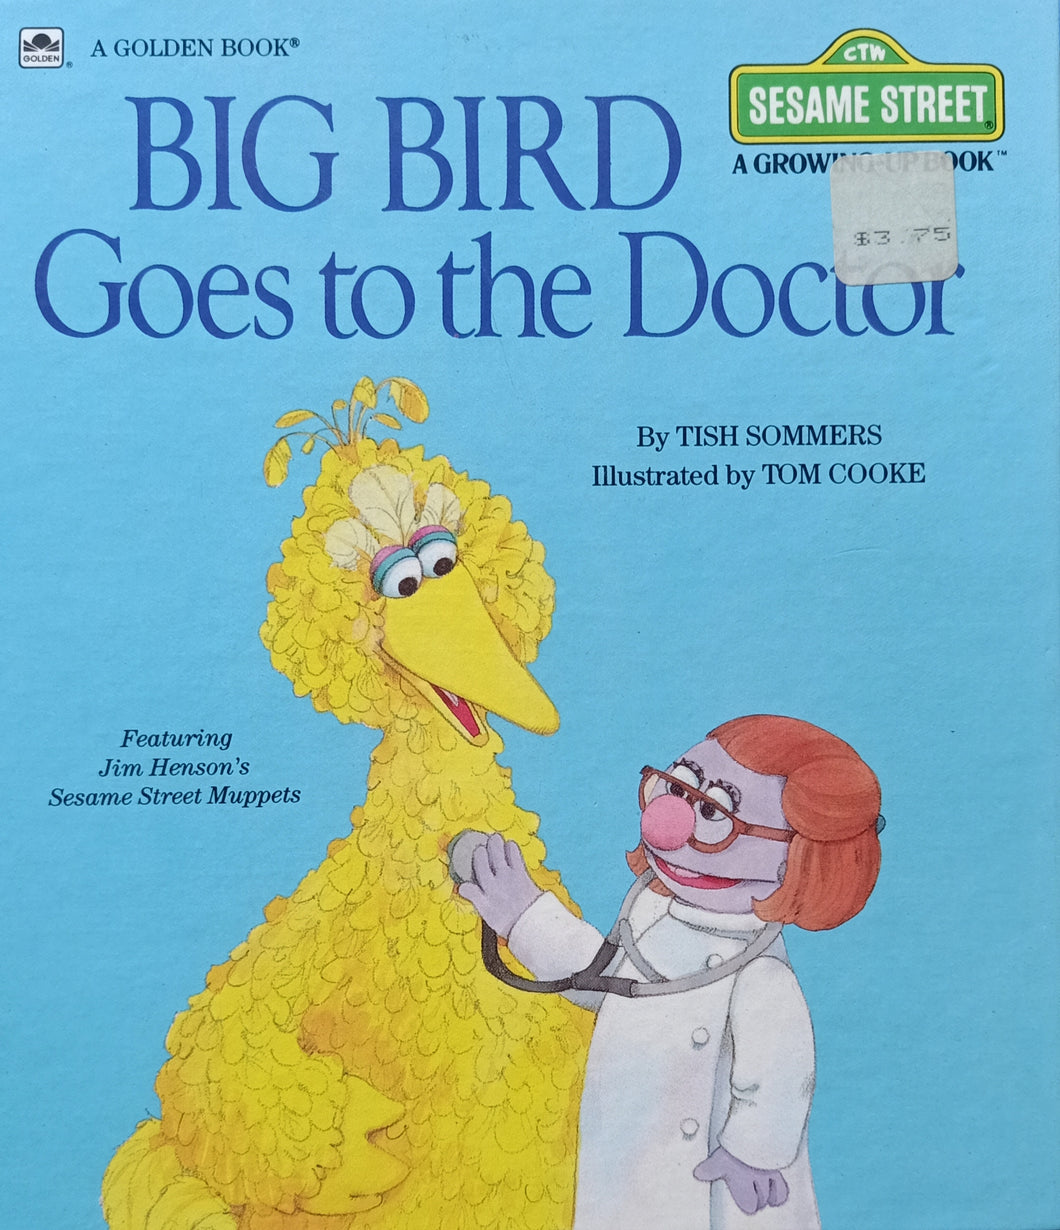 Big Bird Goes To The Doctor by Tish Sommers